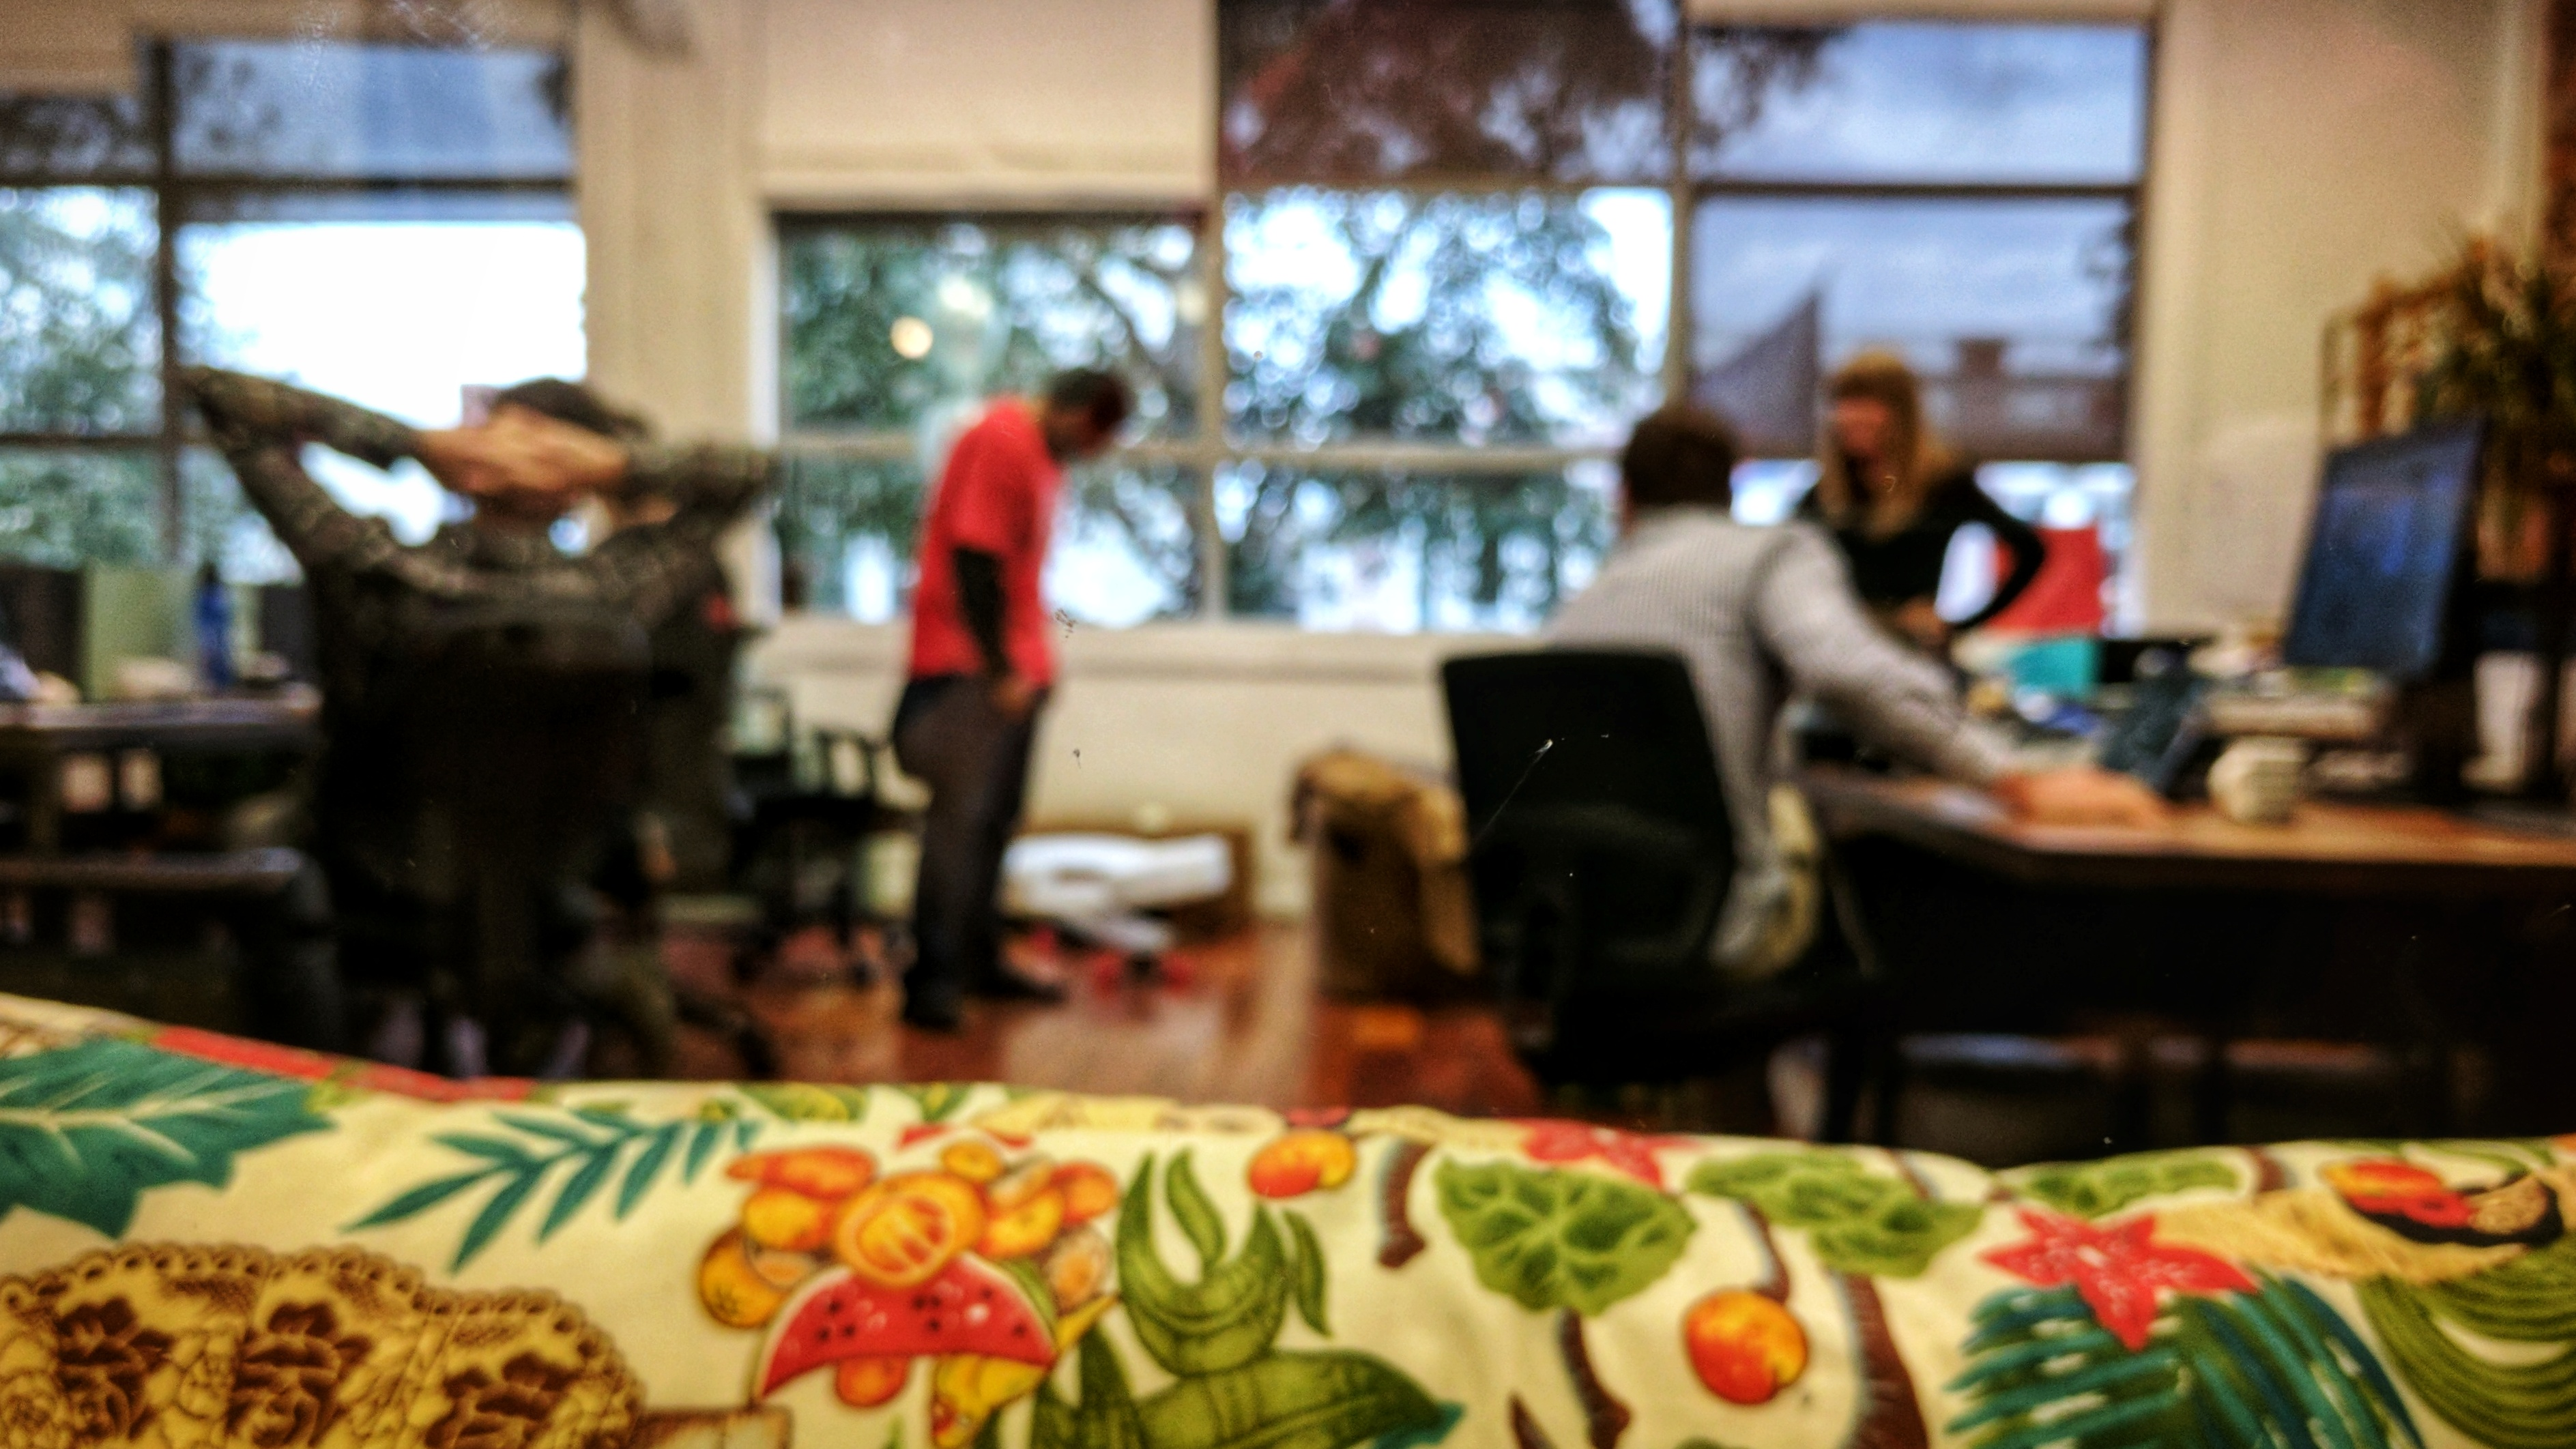 Out of focus Manifold coworking space in New Plymouth (NZ)